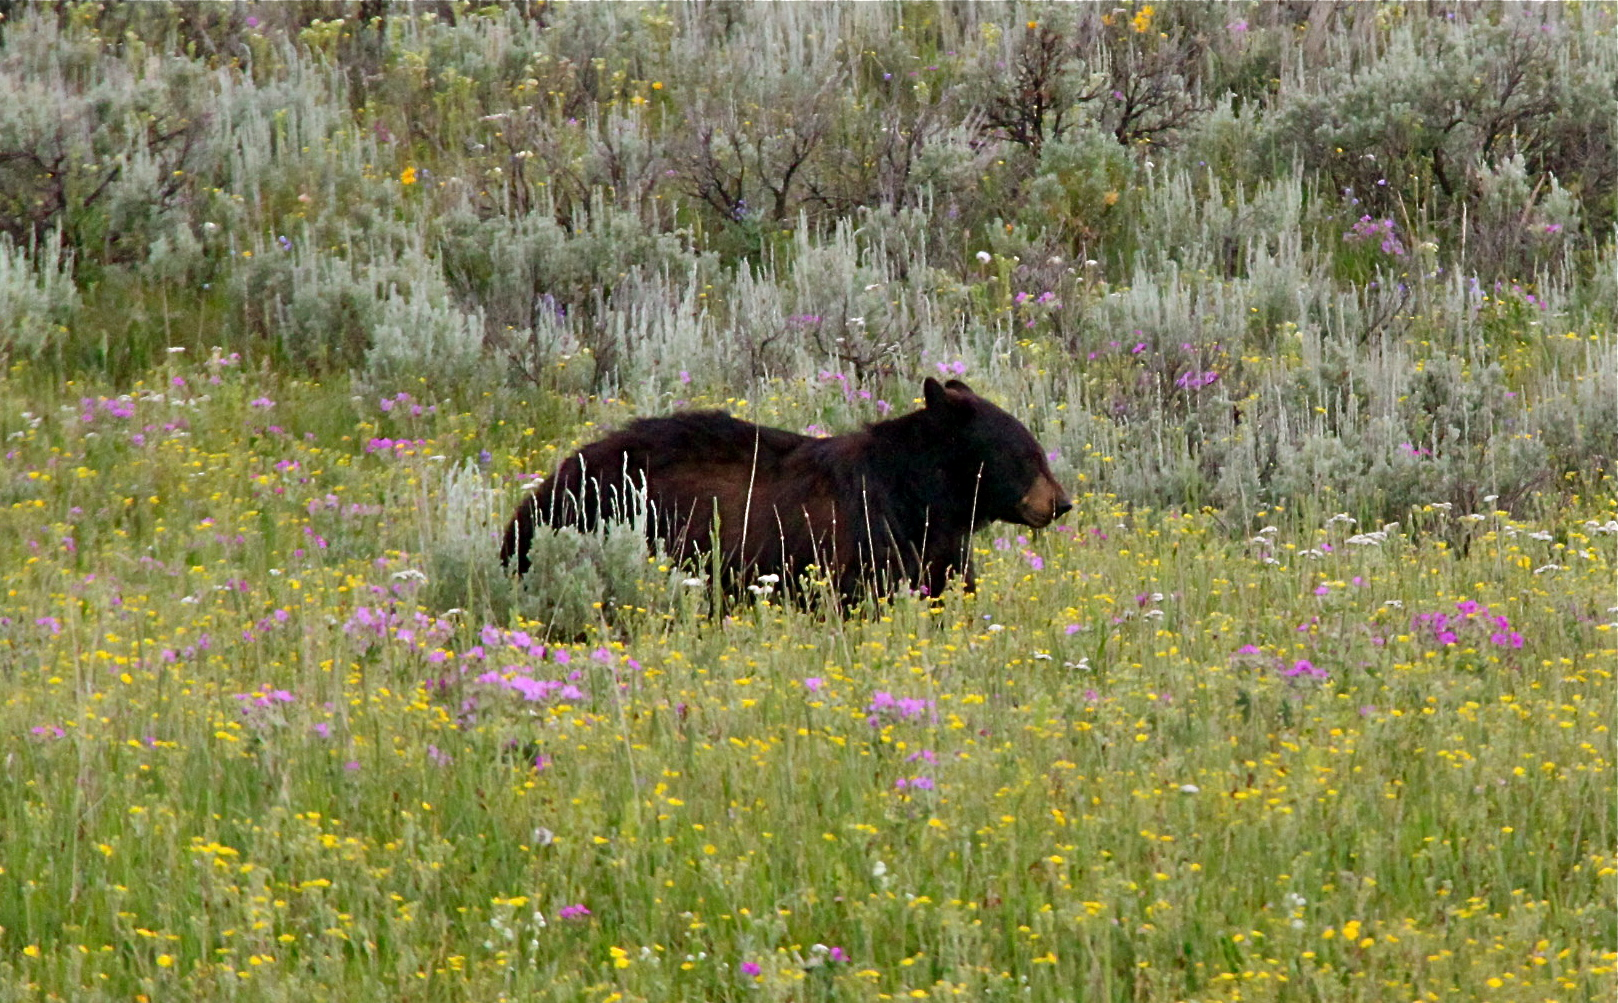 Observer des animaux au Yellowstone, le guide complet | Lost In The ...